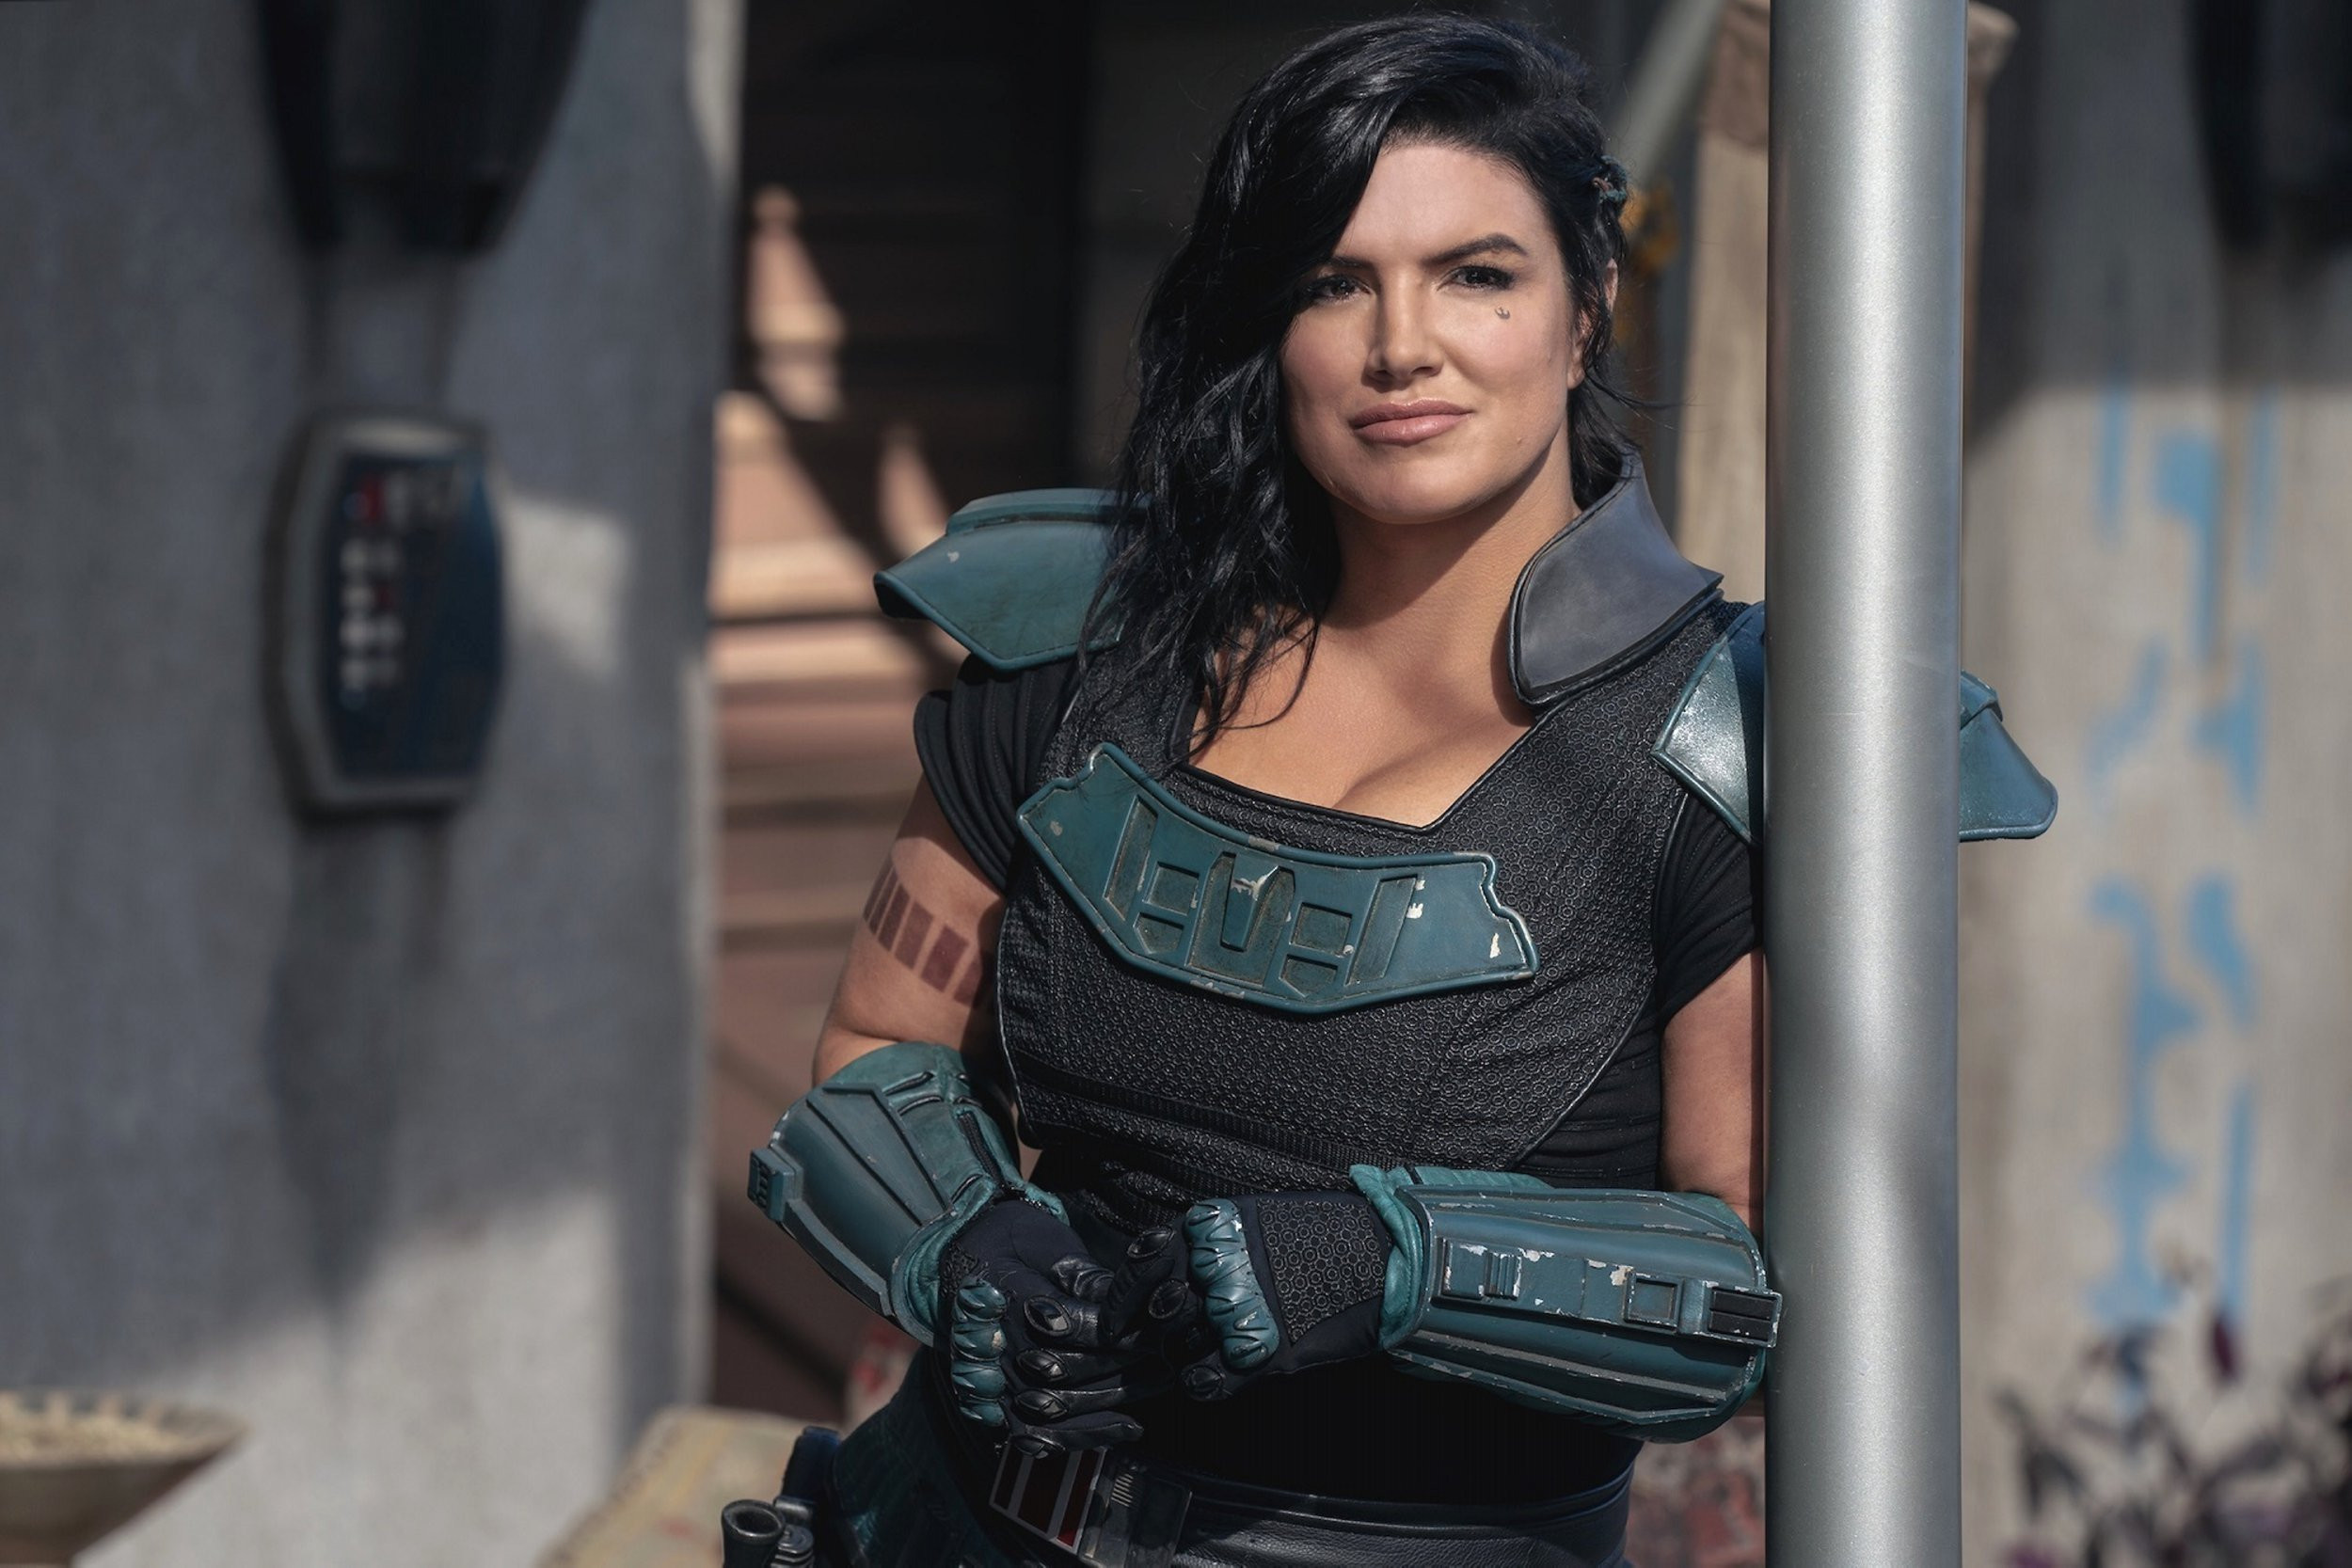 Gina Carano: Who could replace The Mandalorian actor as Cara Dune after being axed?